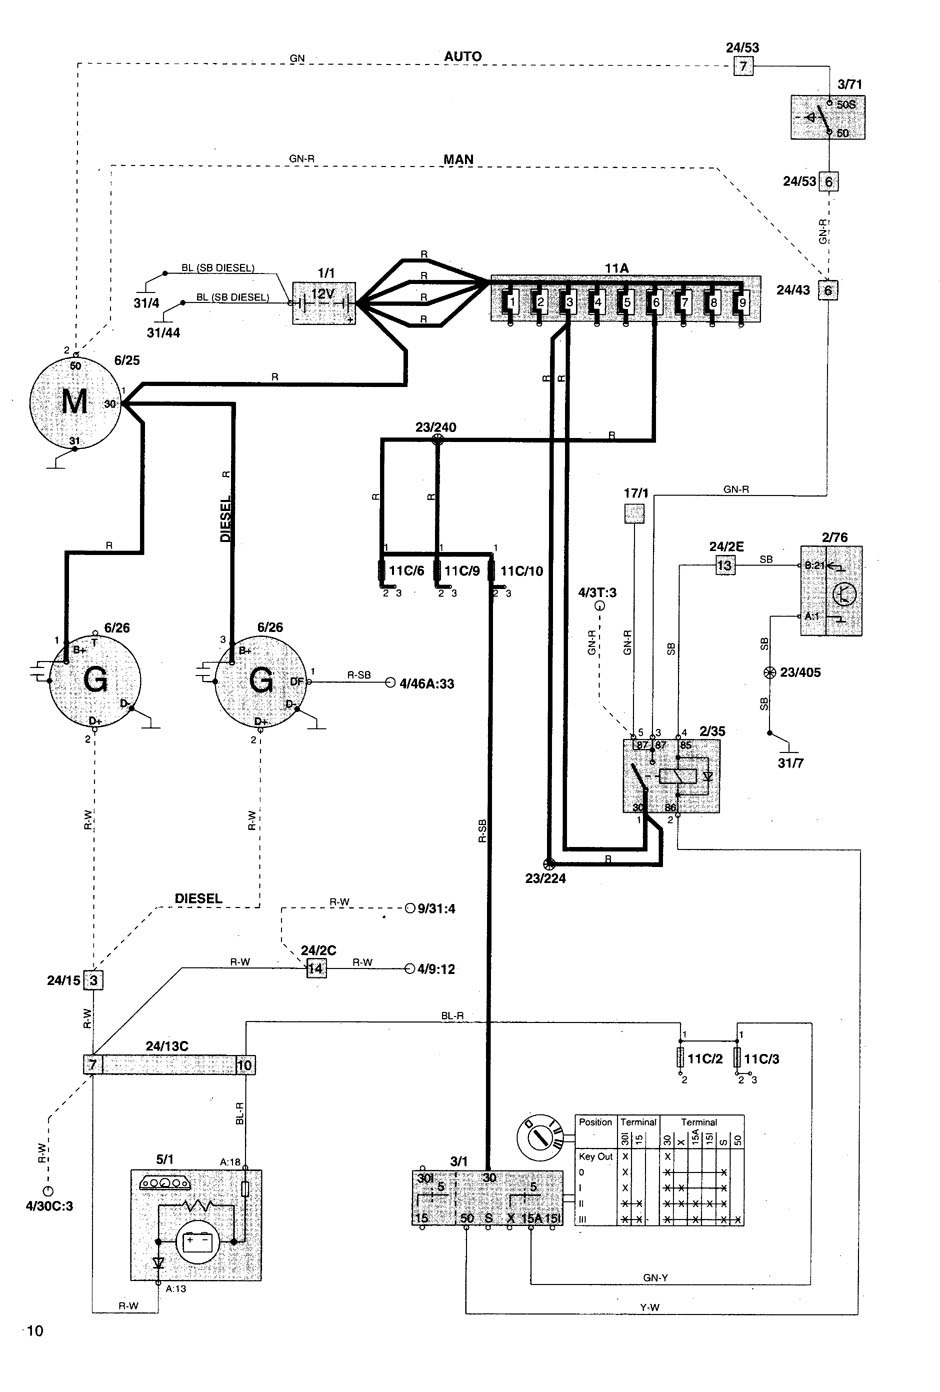 Volvo Wiring Diagrams C70 | Wiring Diagram on volvo v70 tailgate wiring harness, volvo amazon wiring diagram, volvo v70 cooling, volvo ignition wiring diagram, volvo v70 timing marks, volvo v70 battery, volvo v70 rear suspension, volvo v70 thermostat, volvo v70 repair, volvo s70 wiring-diagram, volvo v70 schematics, volvo v70 oil pump, volvo 240 wiring diagram, volvo v70 power, volvo v70 fuse box diagram, volvo v70 distributor, volvo t5 engine diagram, volvo v70 firing order, volvo v70 vacuum diagram, volvo v70 starter,